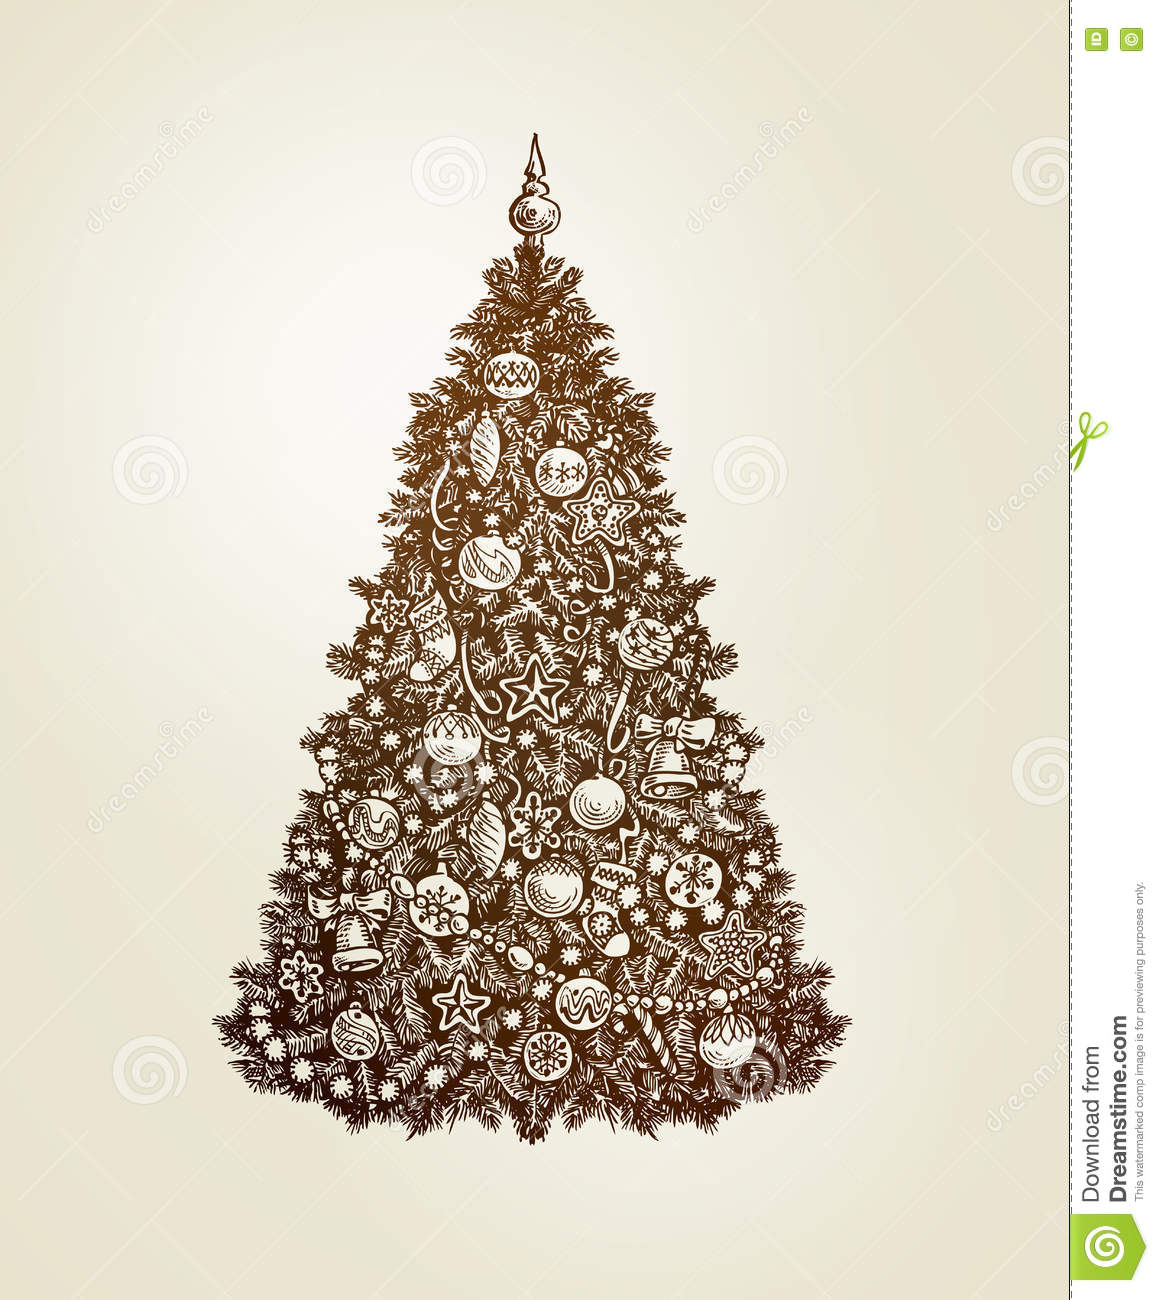 Vintage Christmas tree with xmas decorations. Hand-drawn sketch vector